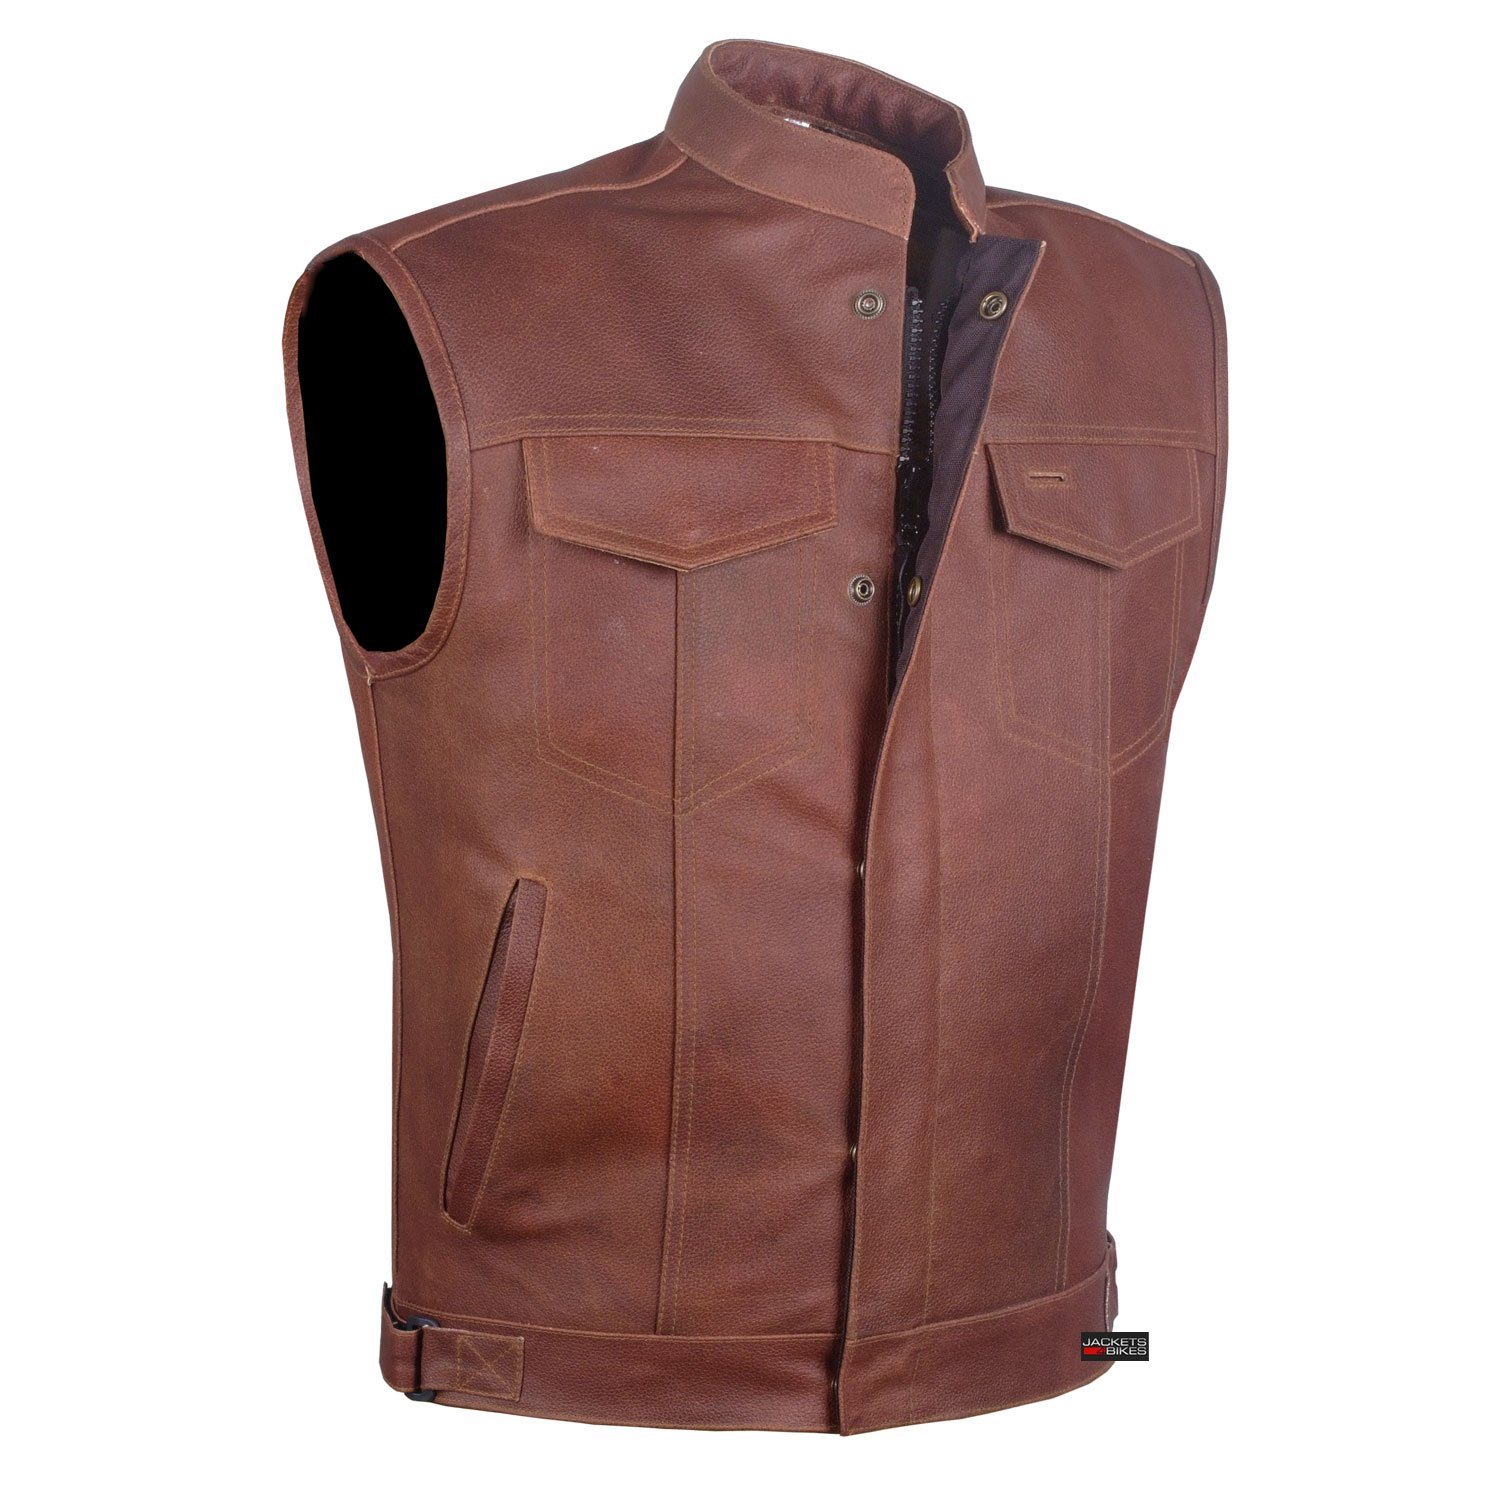 Men Armor Distress Brown Leather SOA Motorcycle Concealed Carry Club Vest XL by Jackets 4 Bikes